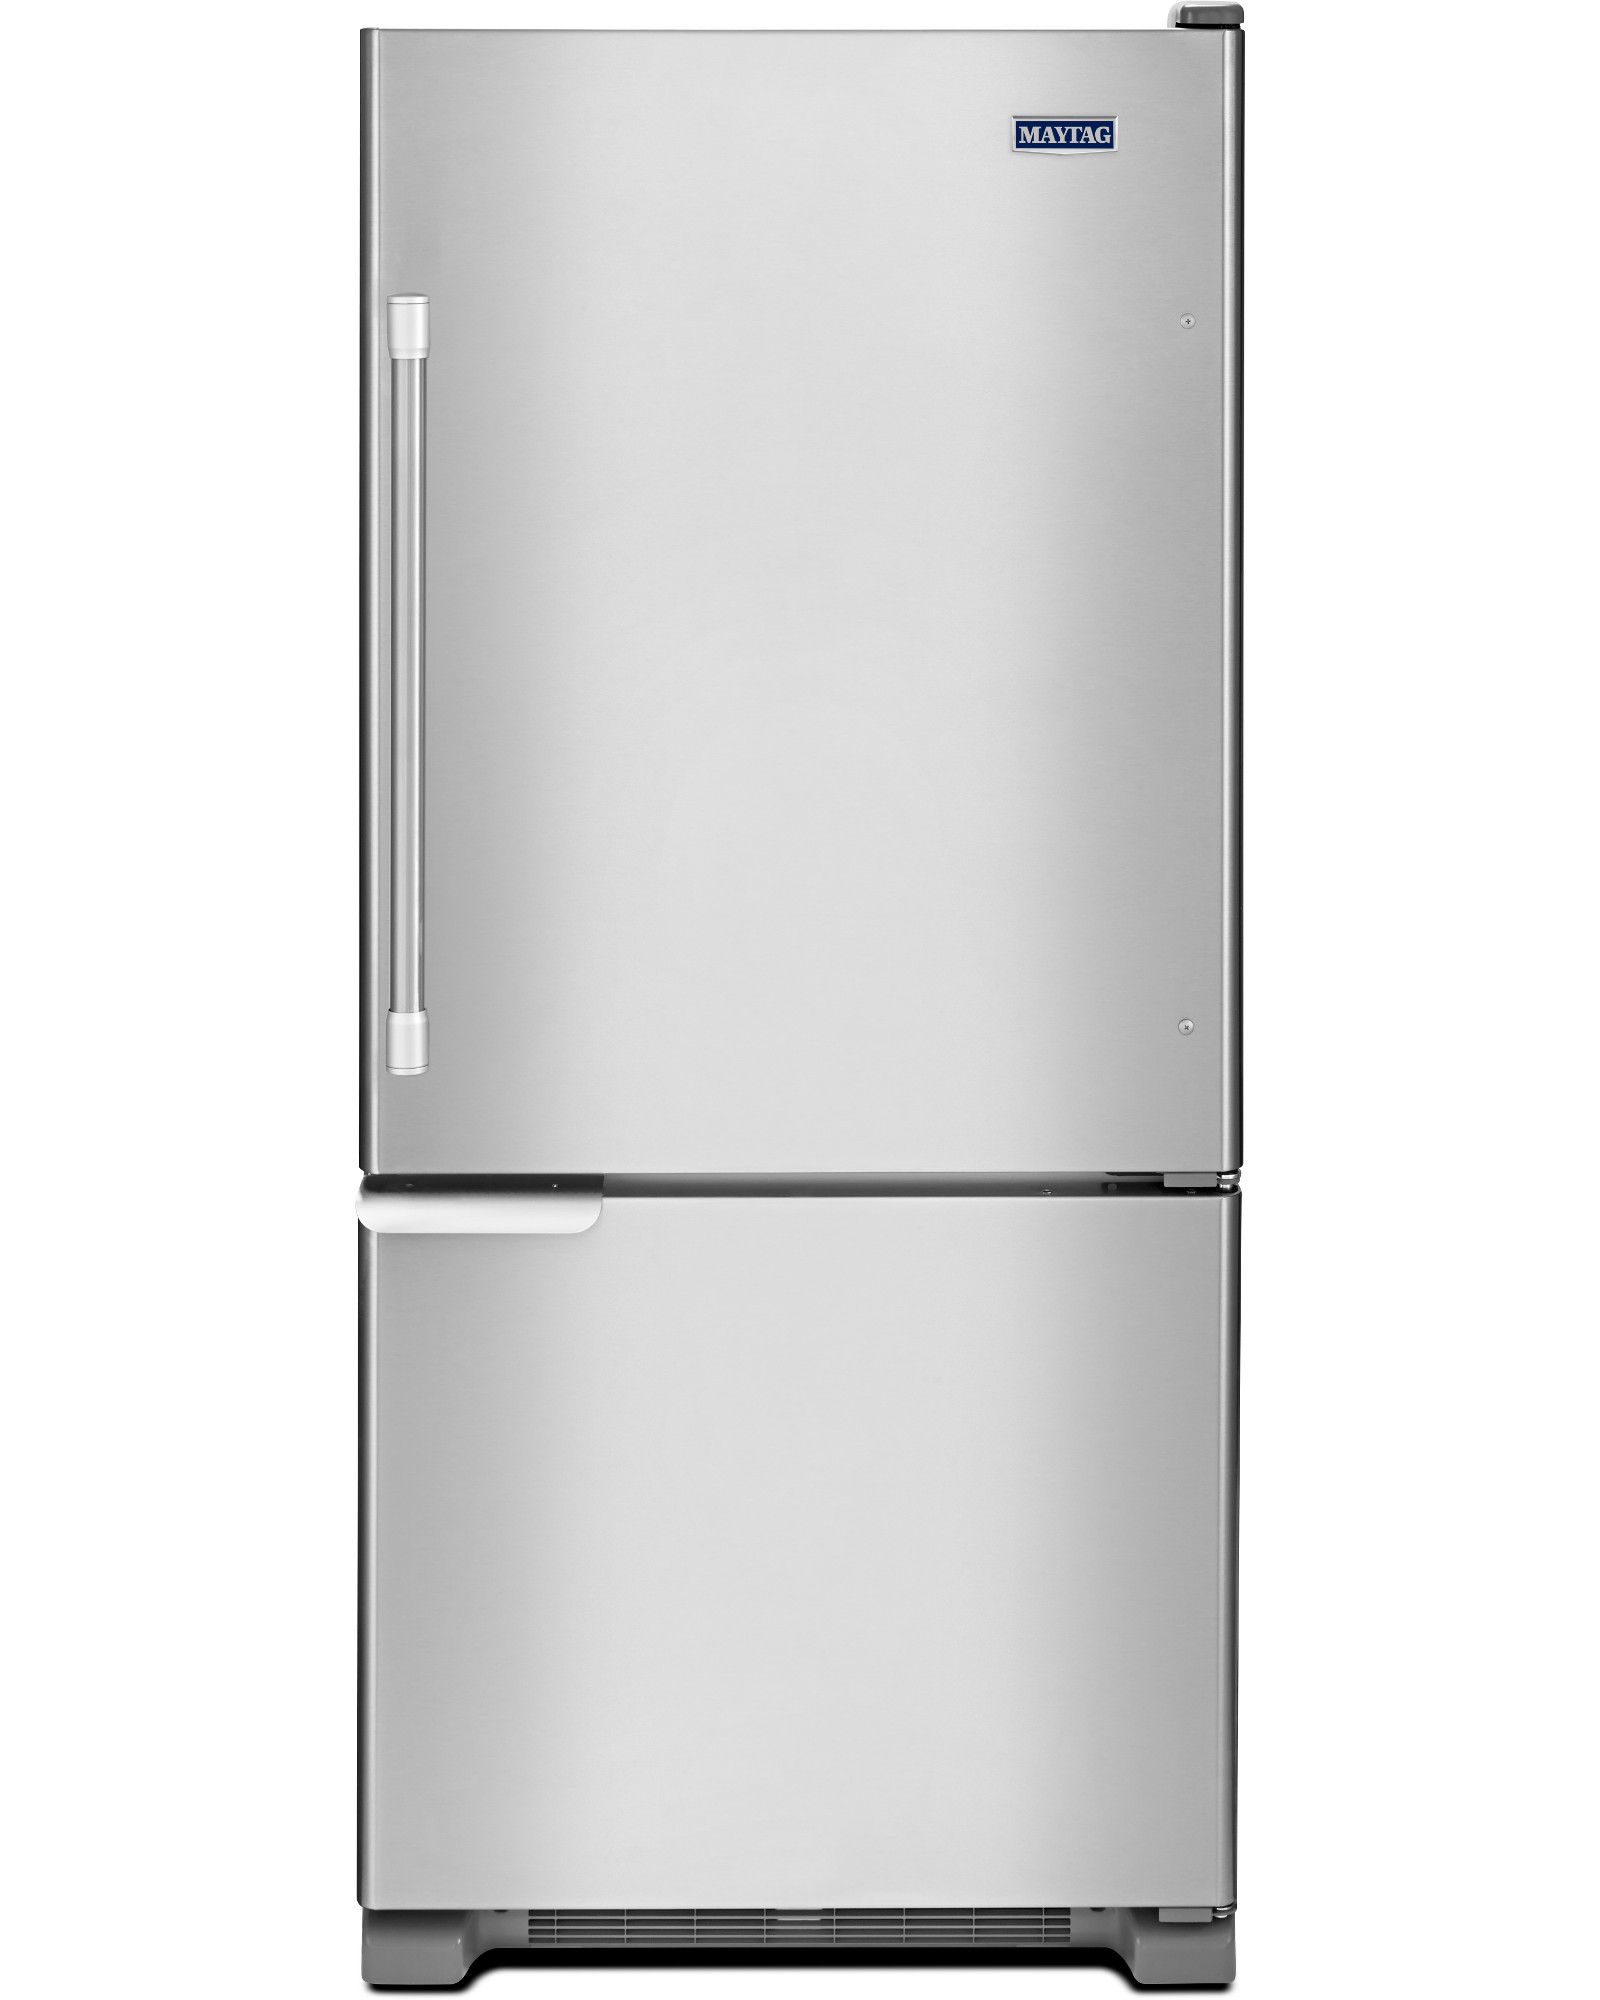 Tough enough for any kitchen a strong Maytag single door bottom